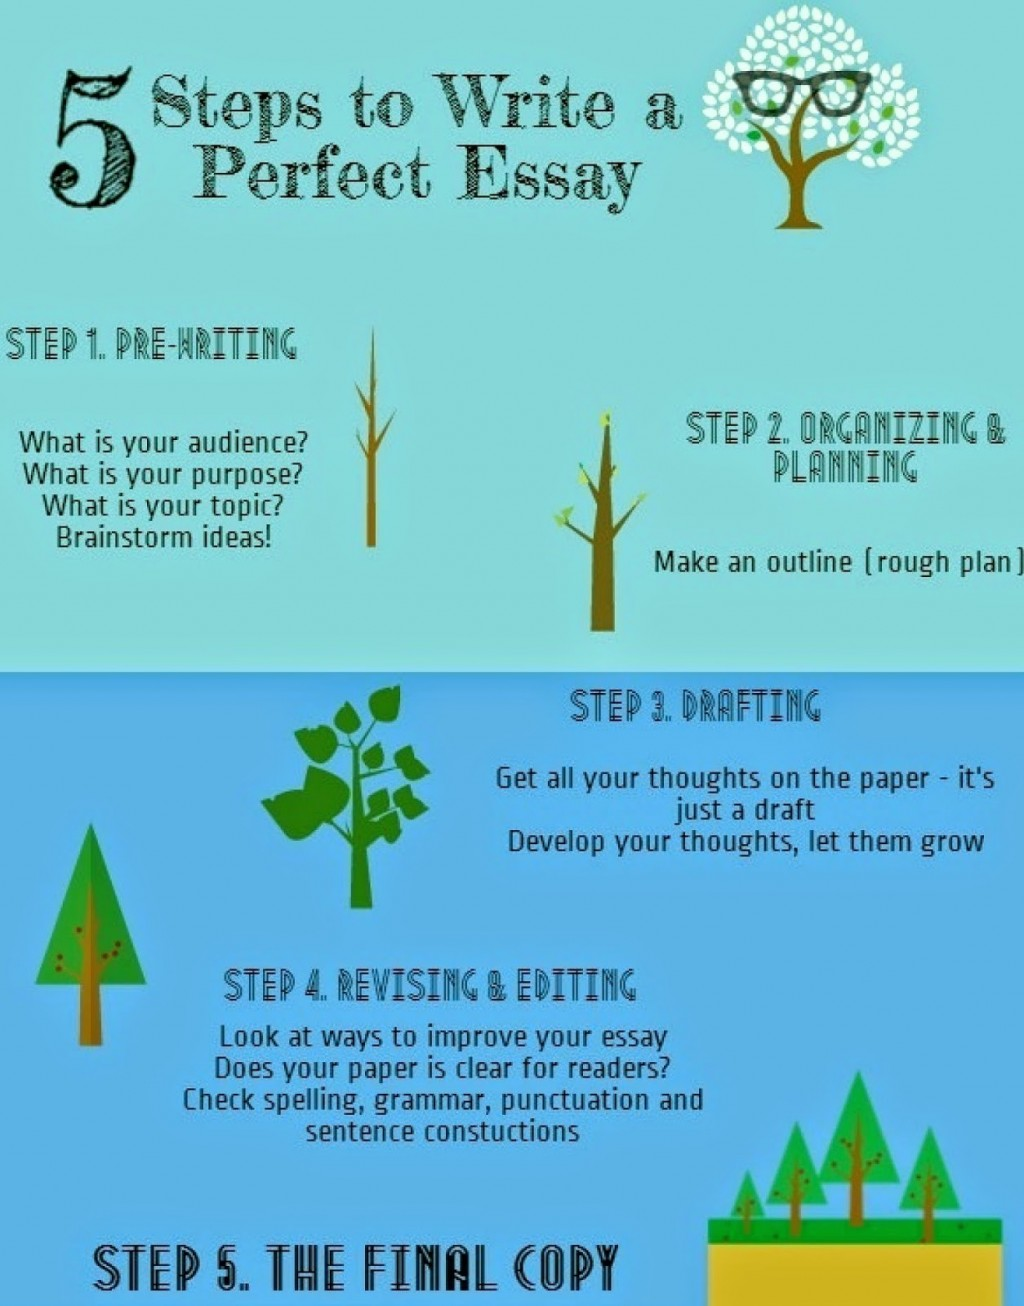 008 How To Write An Essay Fast Writing Service Character Easy Steps Narr Paragraph Good Argumentative In Five Pdf Persuasive Narrative Fascinating Academic English Exam Large